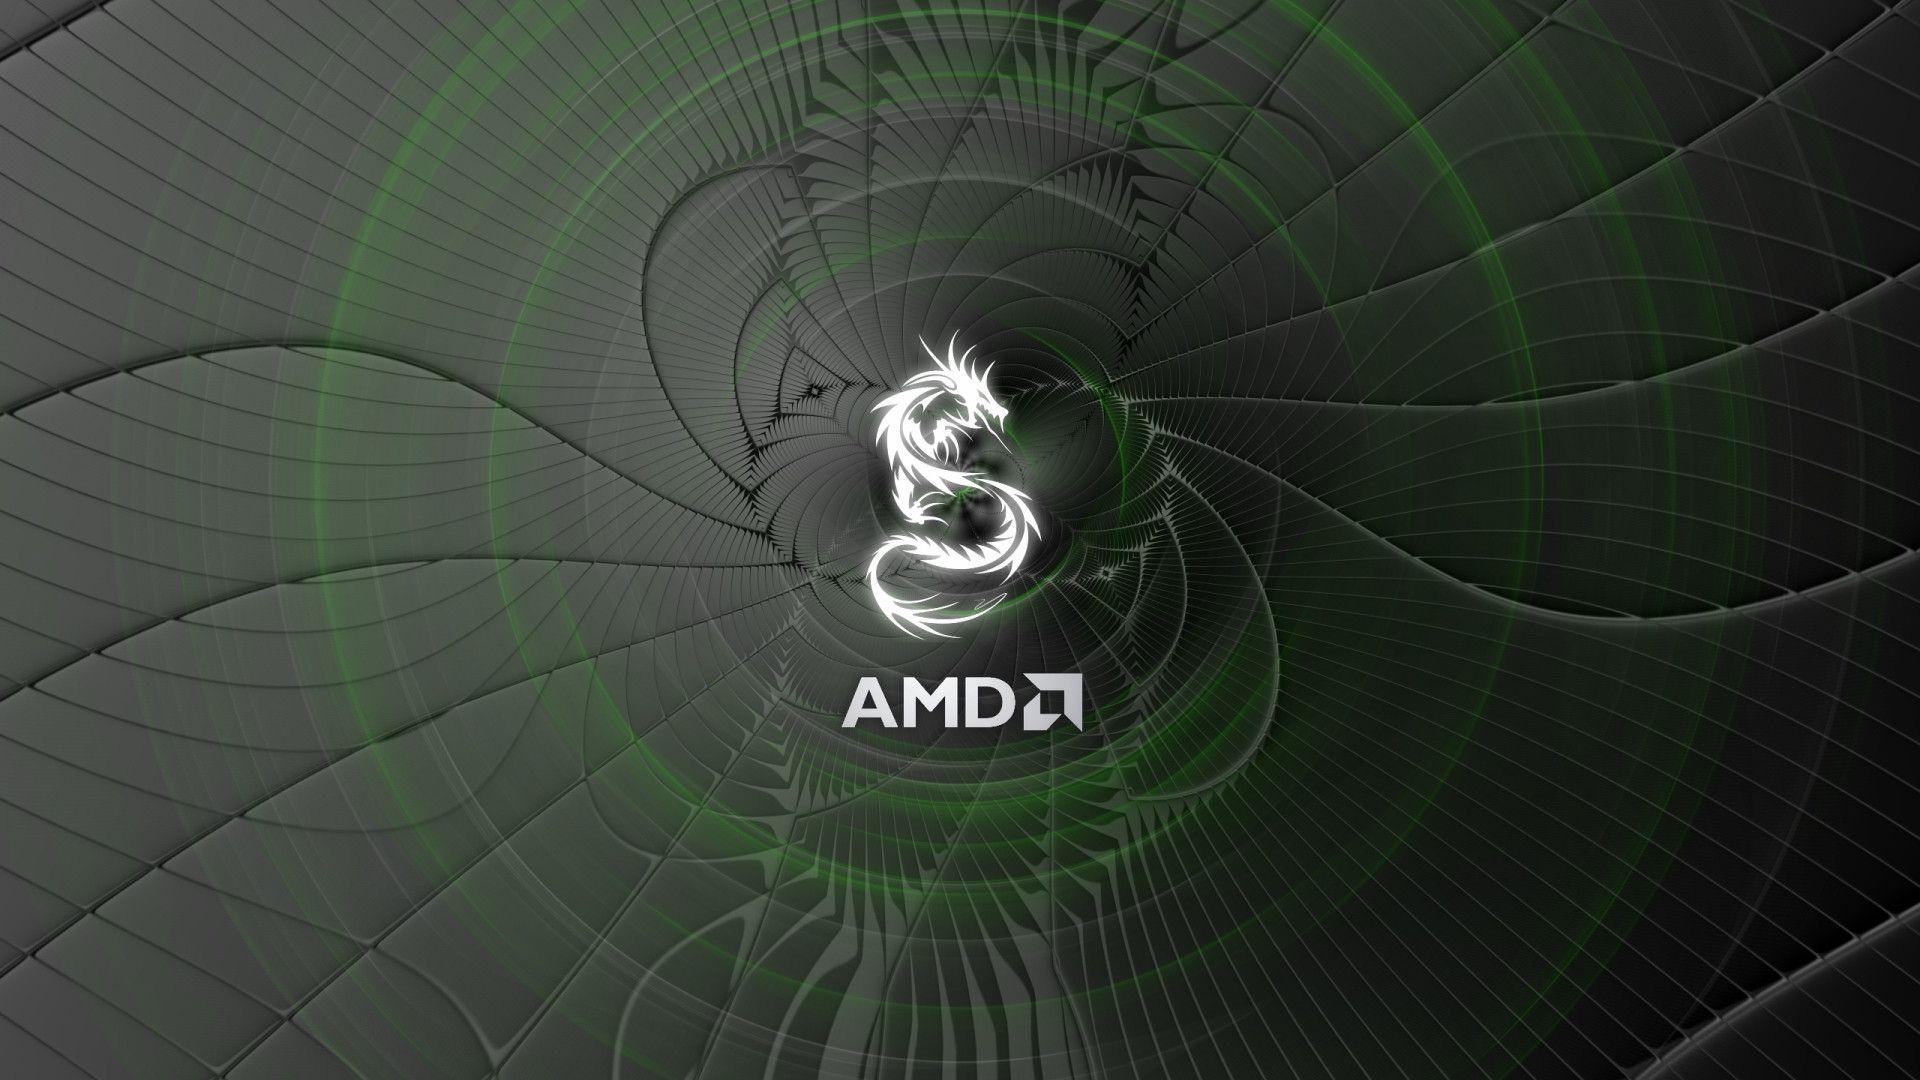 amd radeon wallpapers hd - photo #31